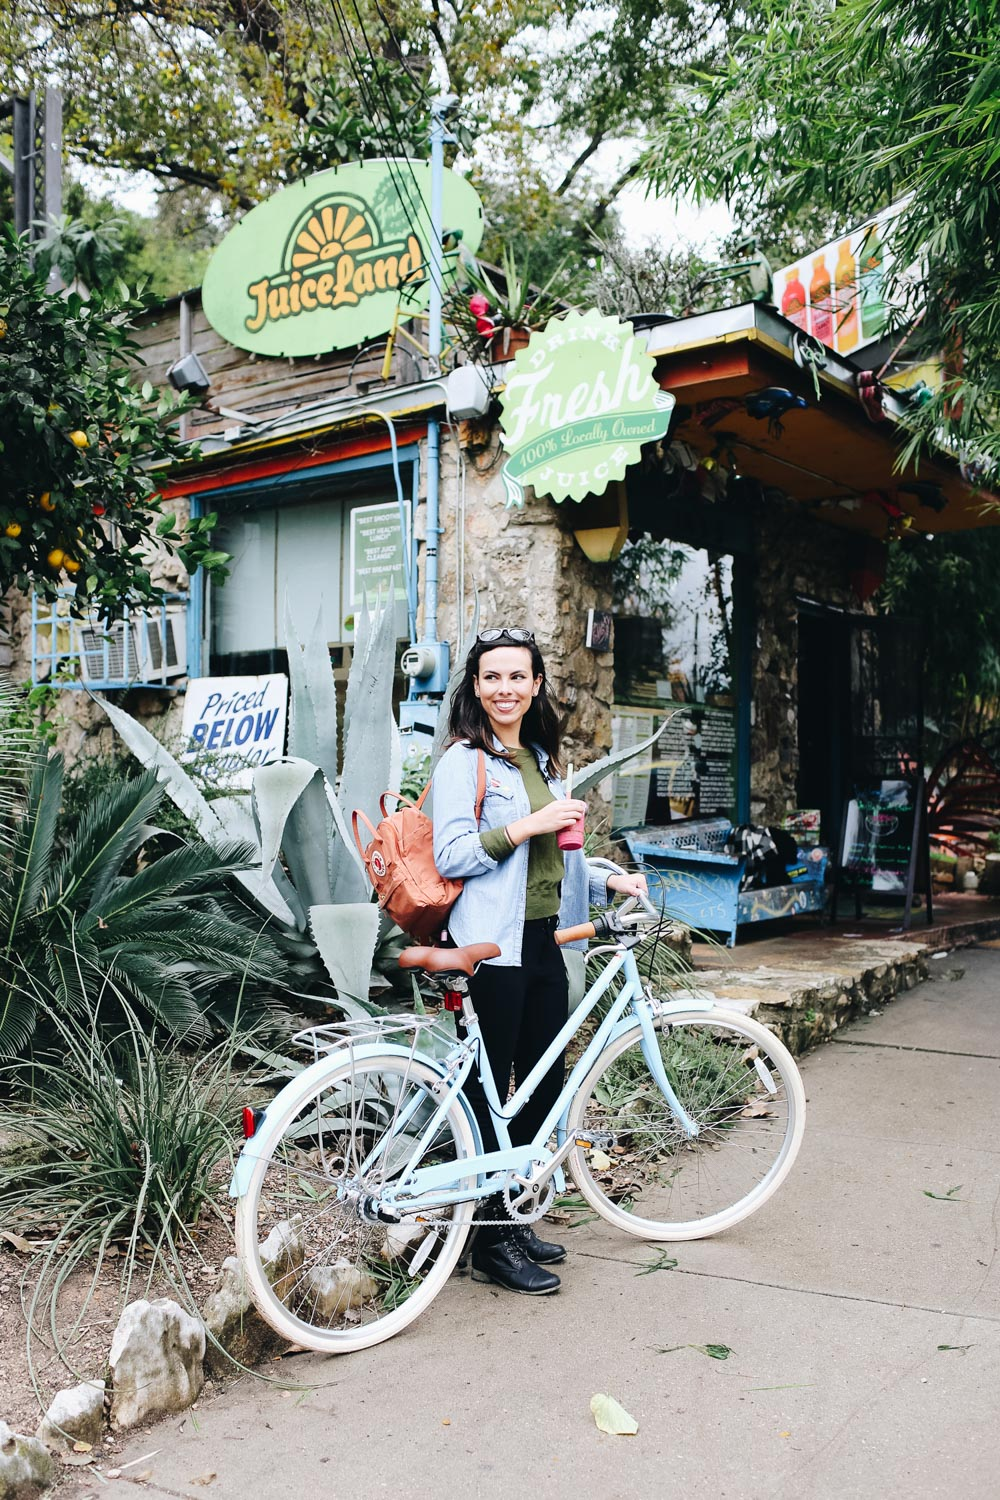 Juiceland Austin Bike Tour